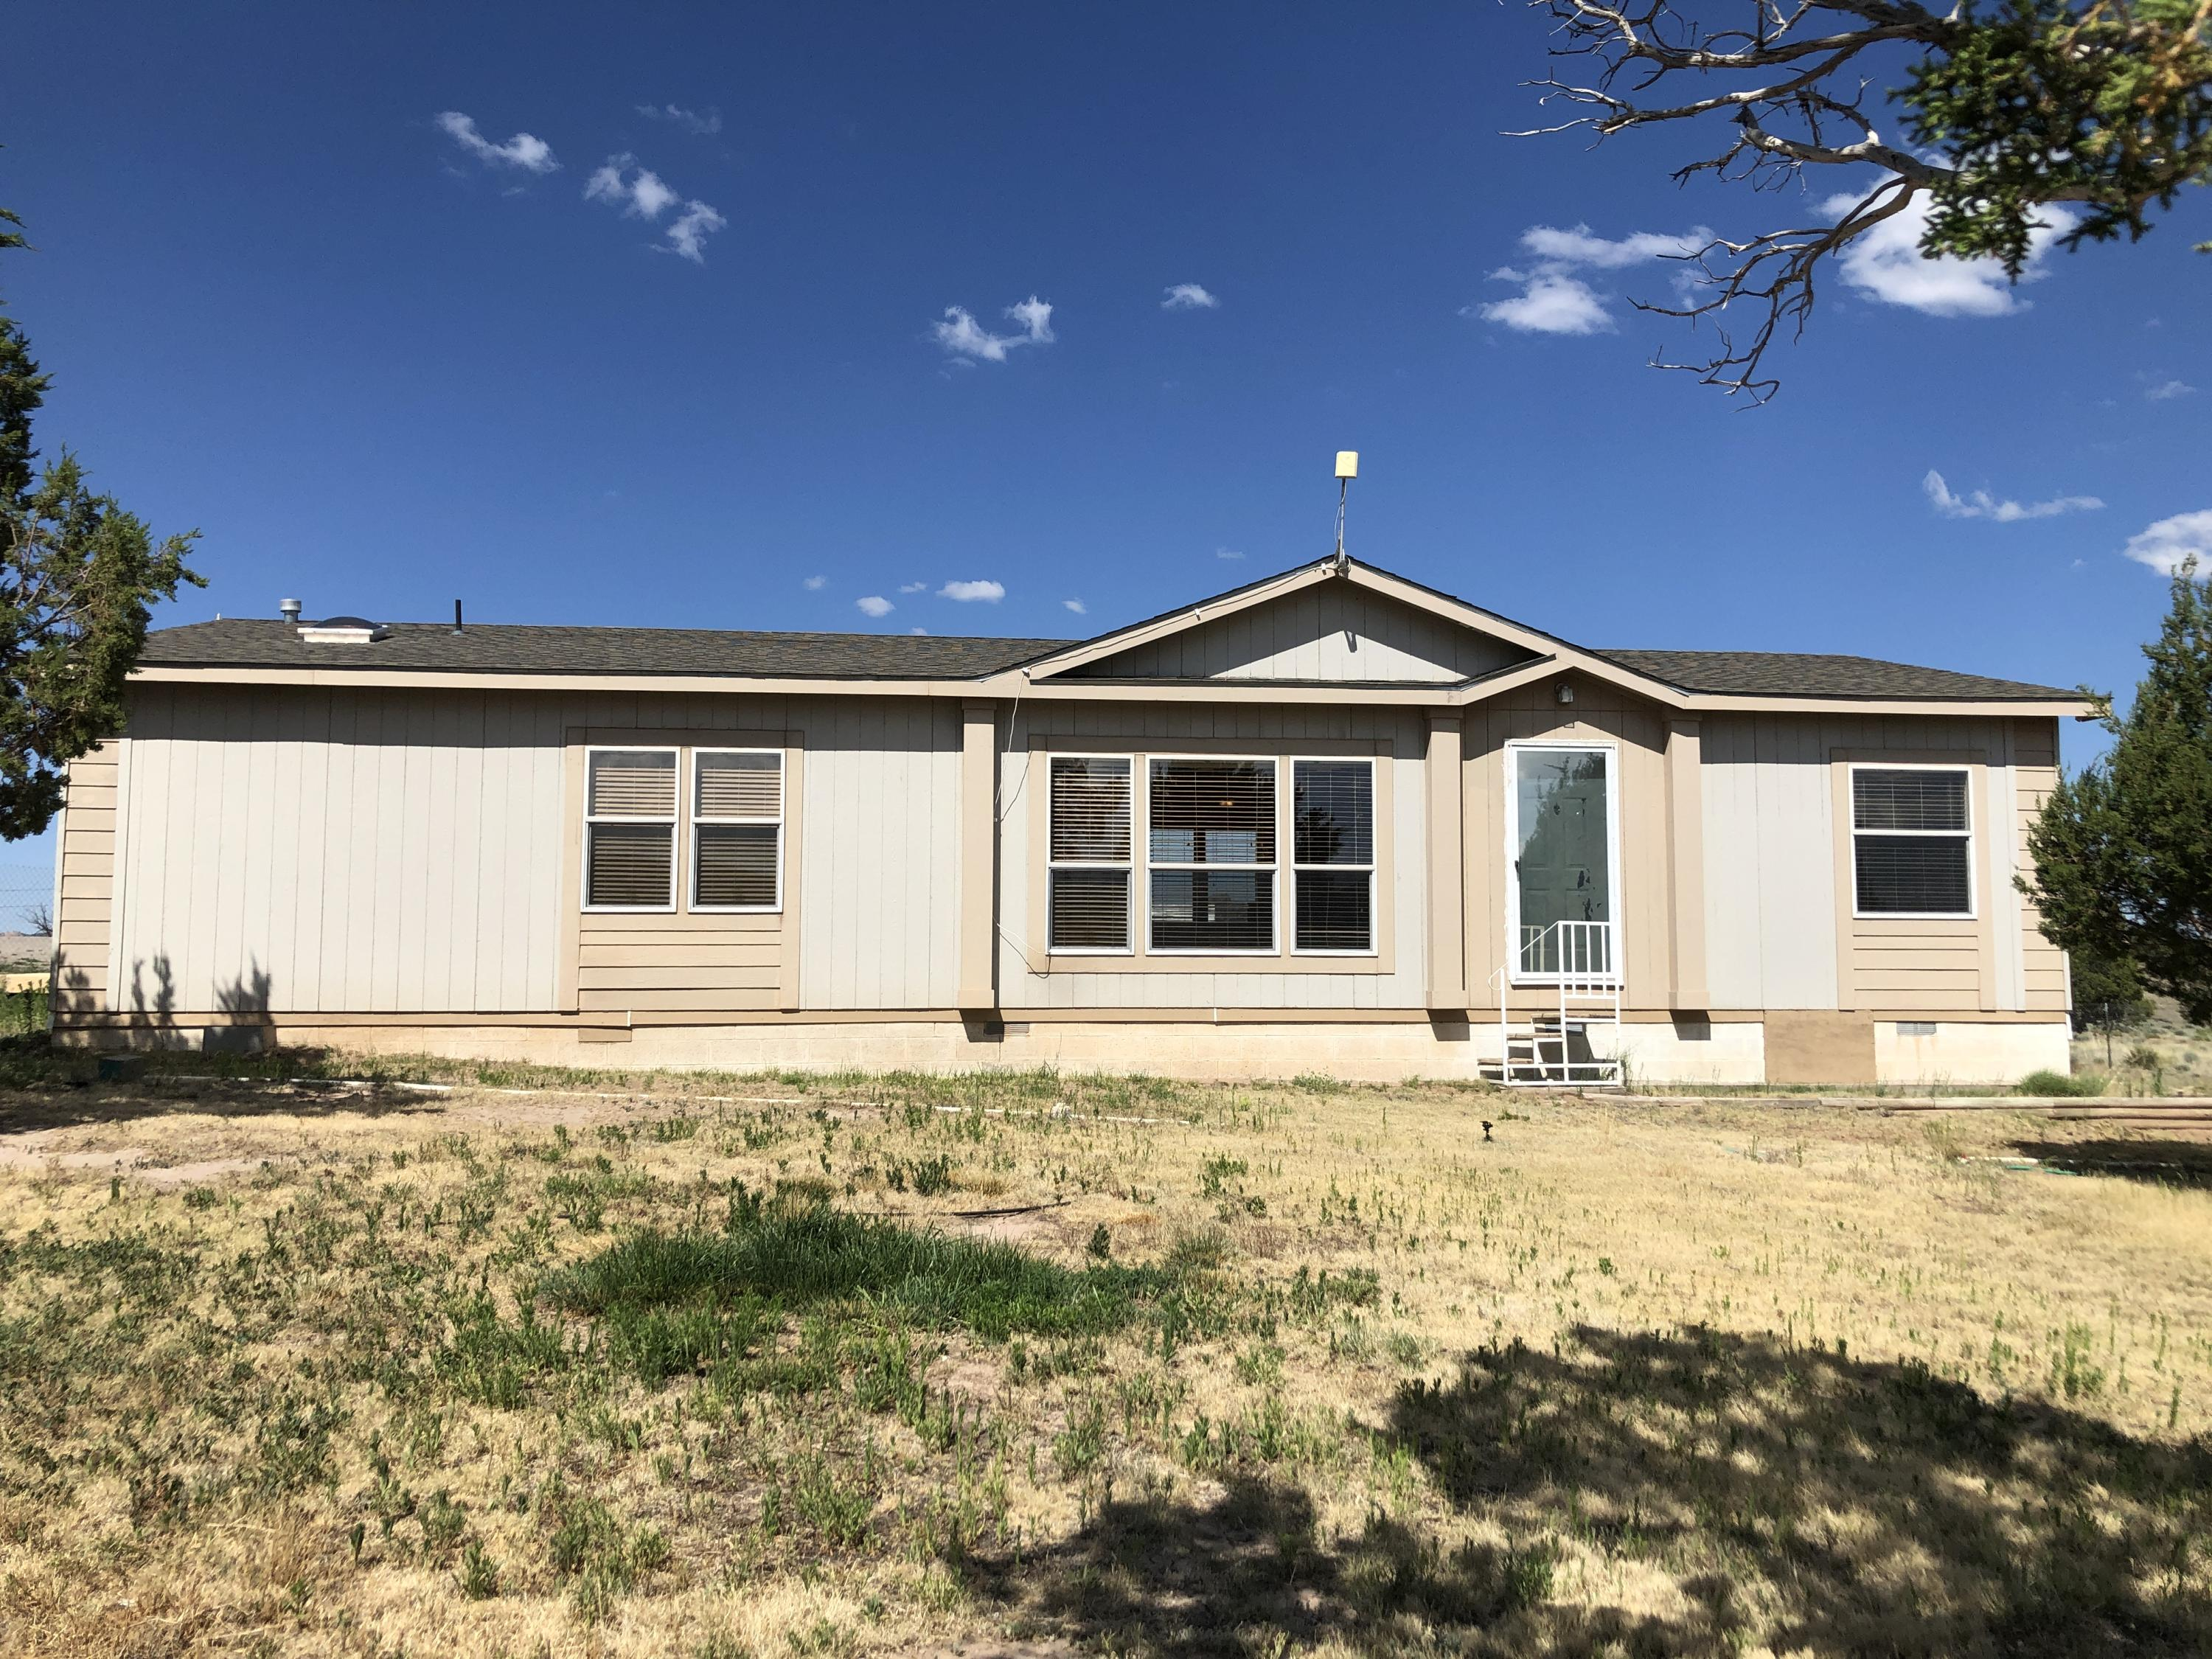 3198 Highway 60, Quemado, NM 87829 - Quemado, NM real estate listing